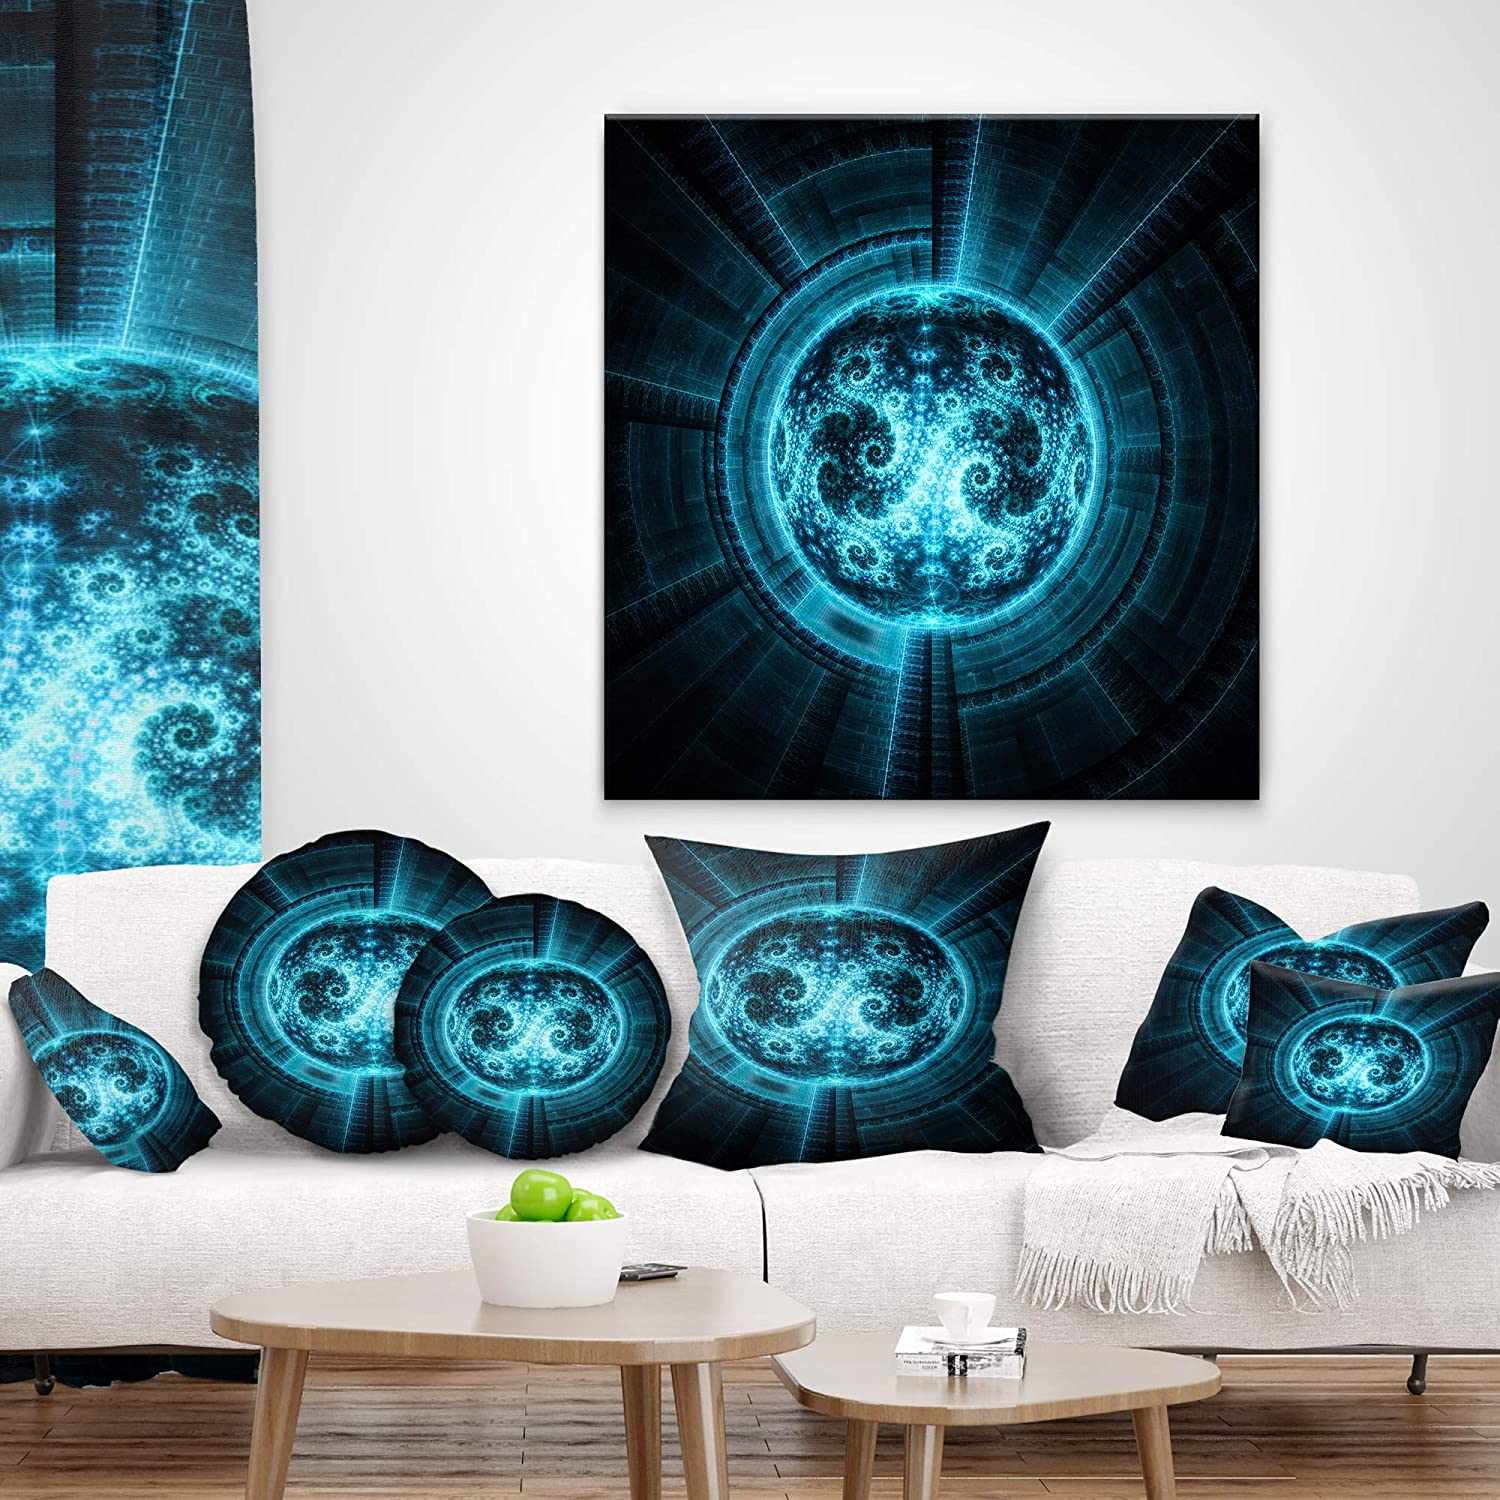 Sofa Throw Pillow 12 in Designart CU12082-12-20 Glowing Bright Blue White Fractal Flower Abstract Lumbar Cushion Cover for Living Room Insert Printed On Both Side x 20 in in